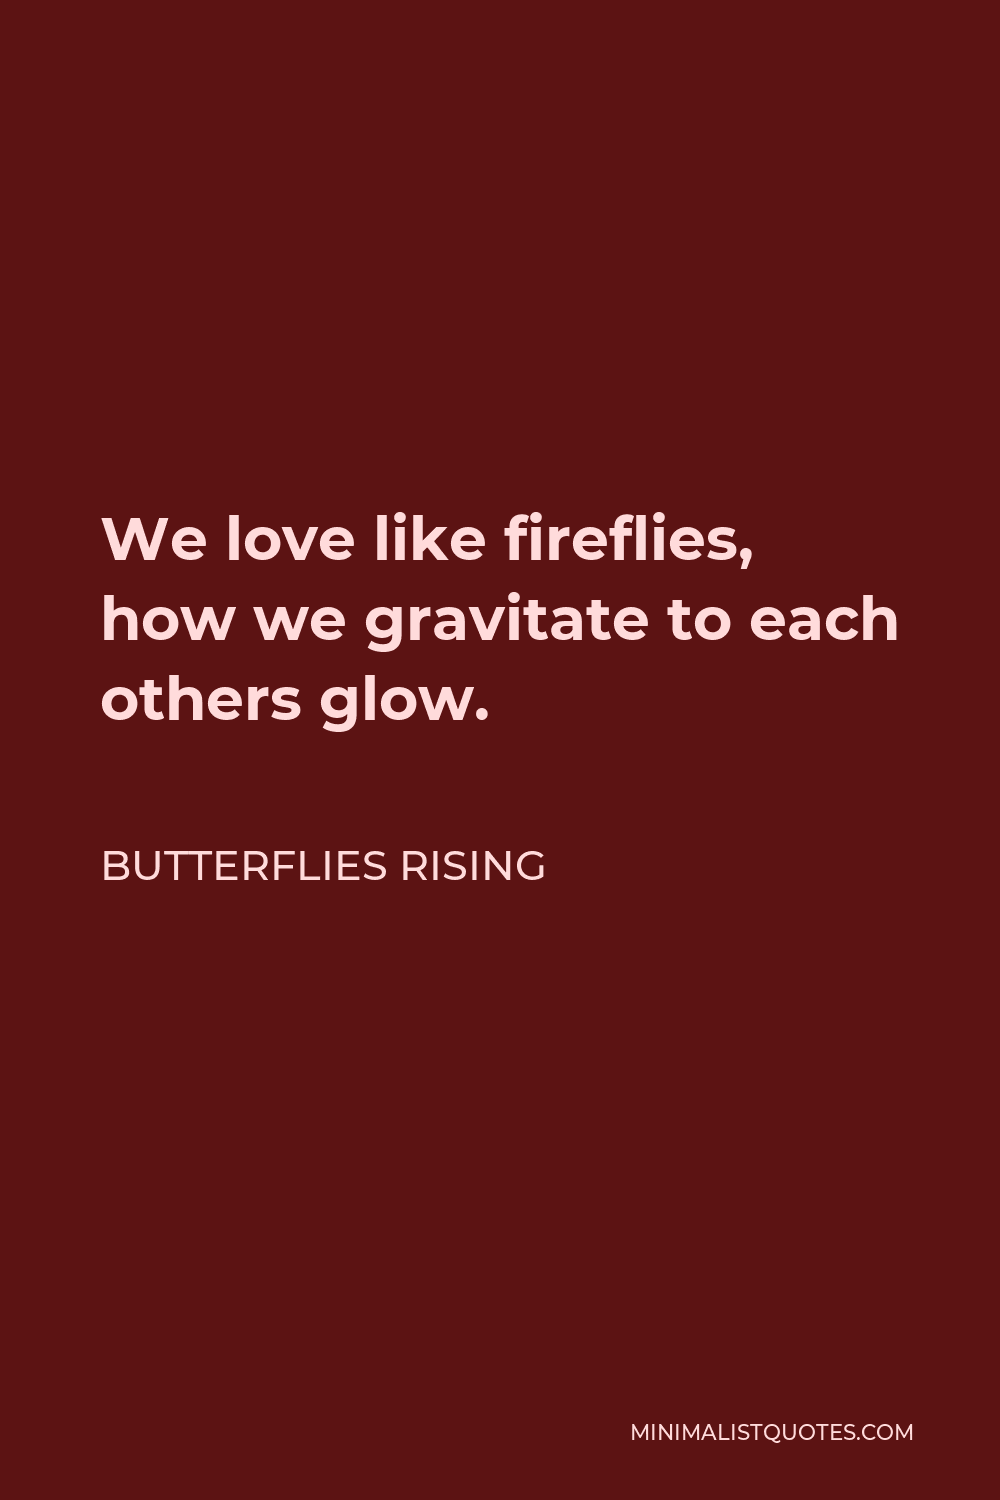 Butterflies Rising Quote - We love like fireflies, how we gravitate to each others glow.